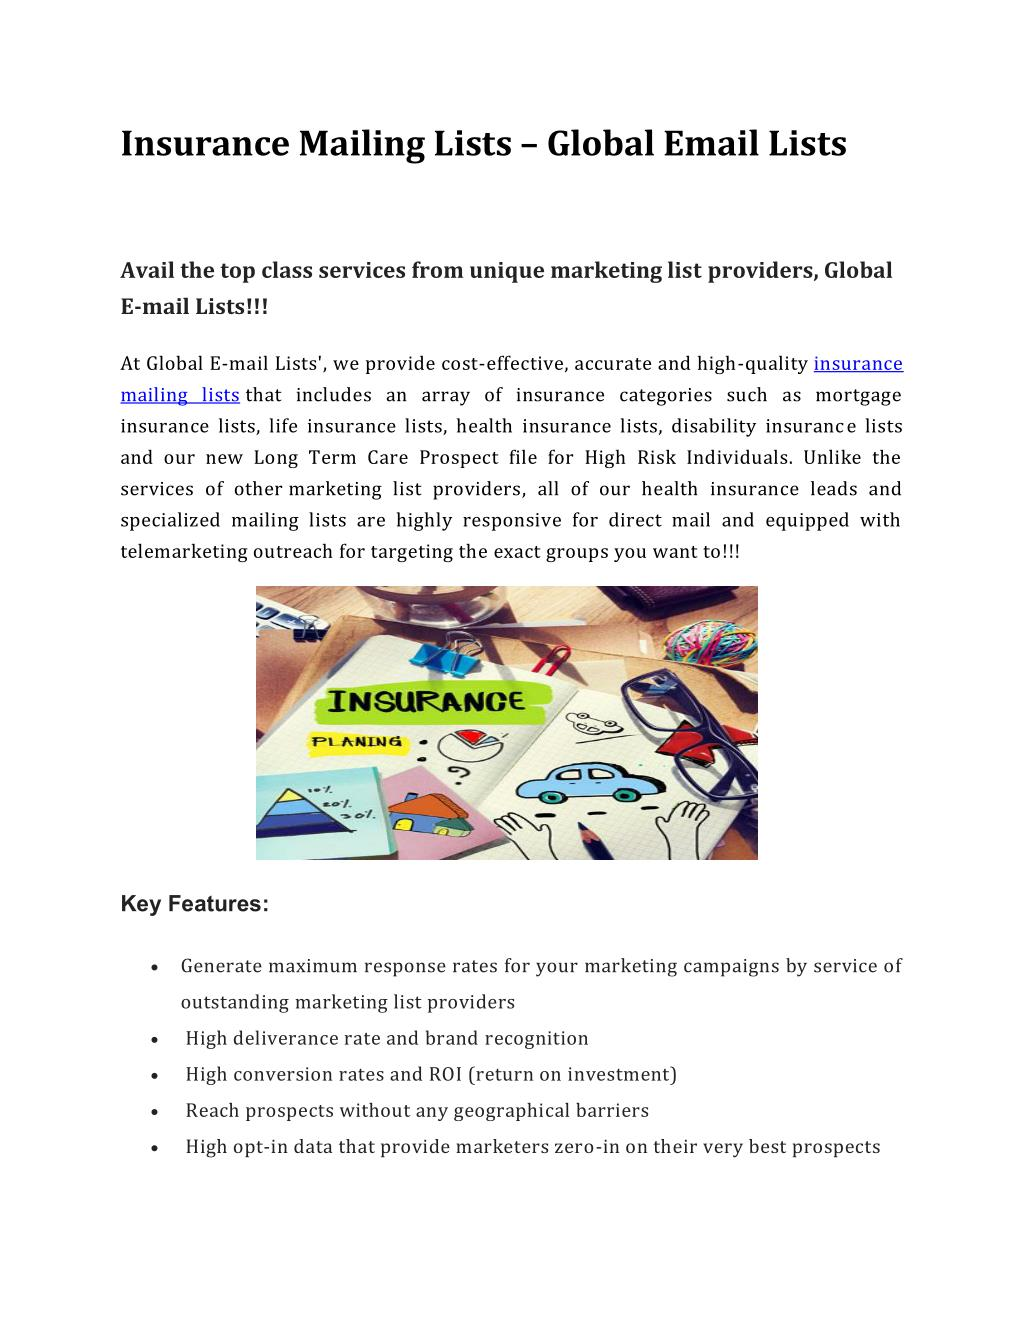 PPT - Insurance Mailing Lists – Global Email Lists